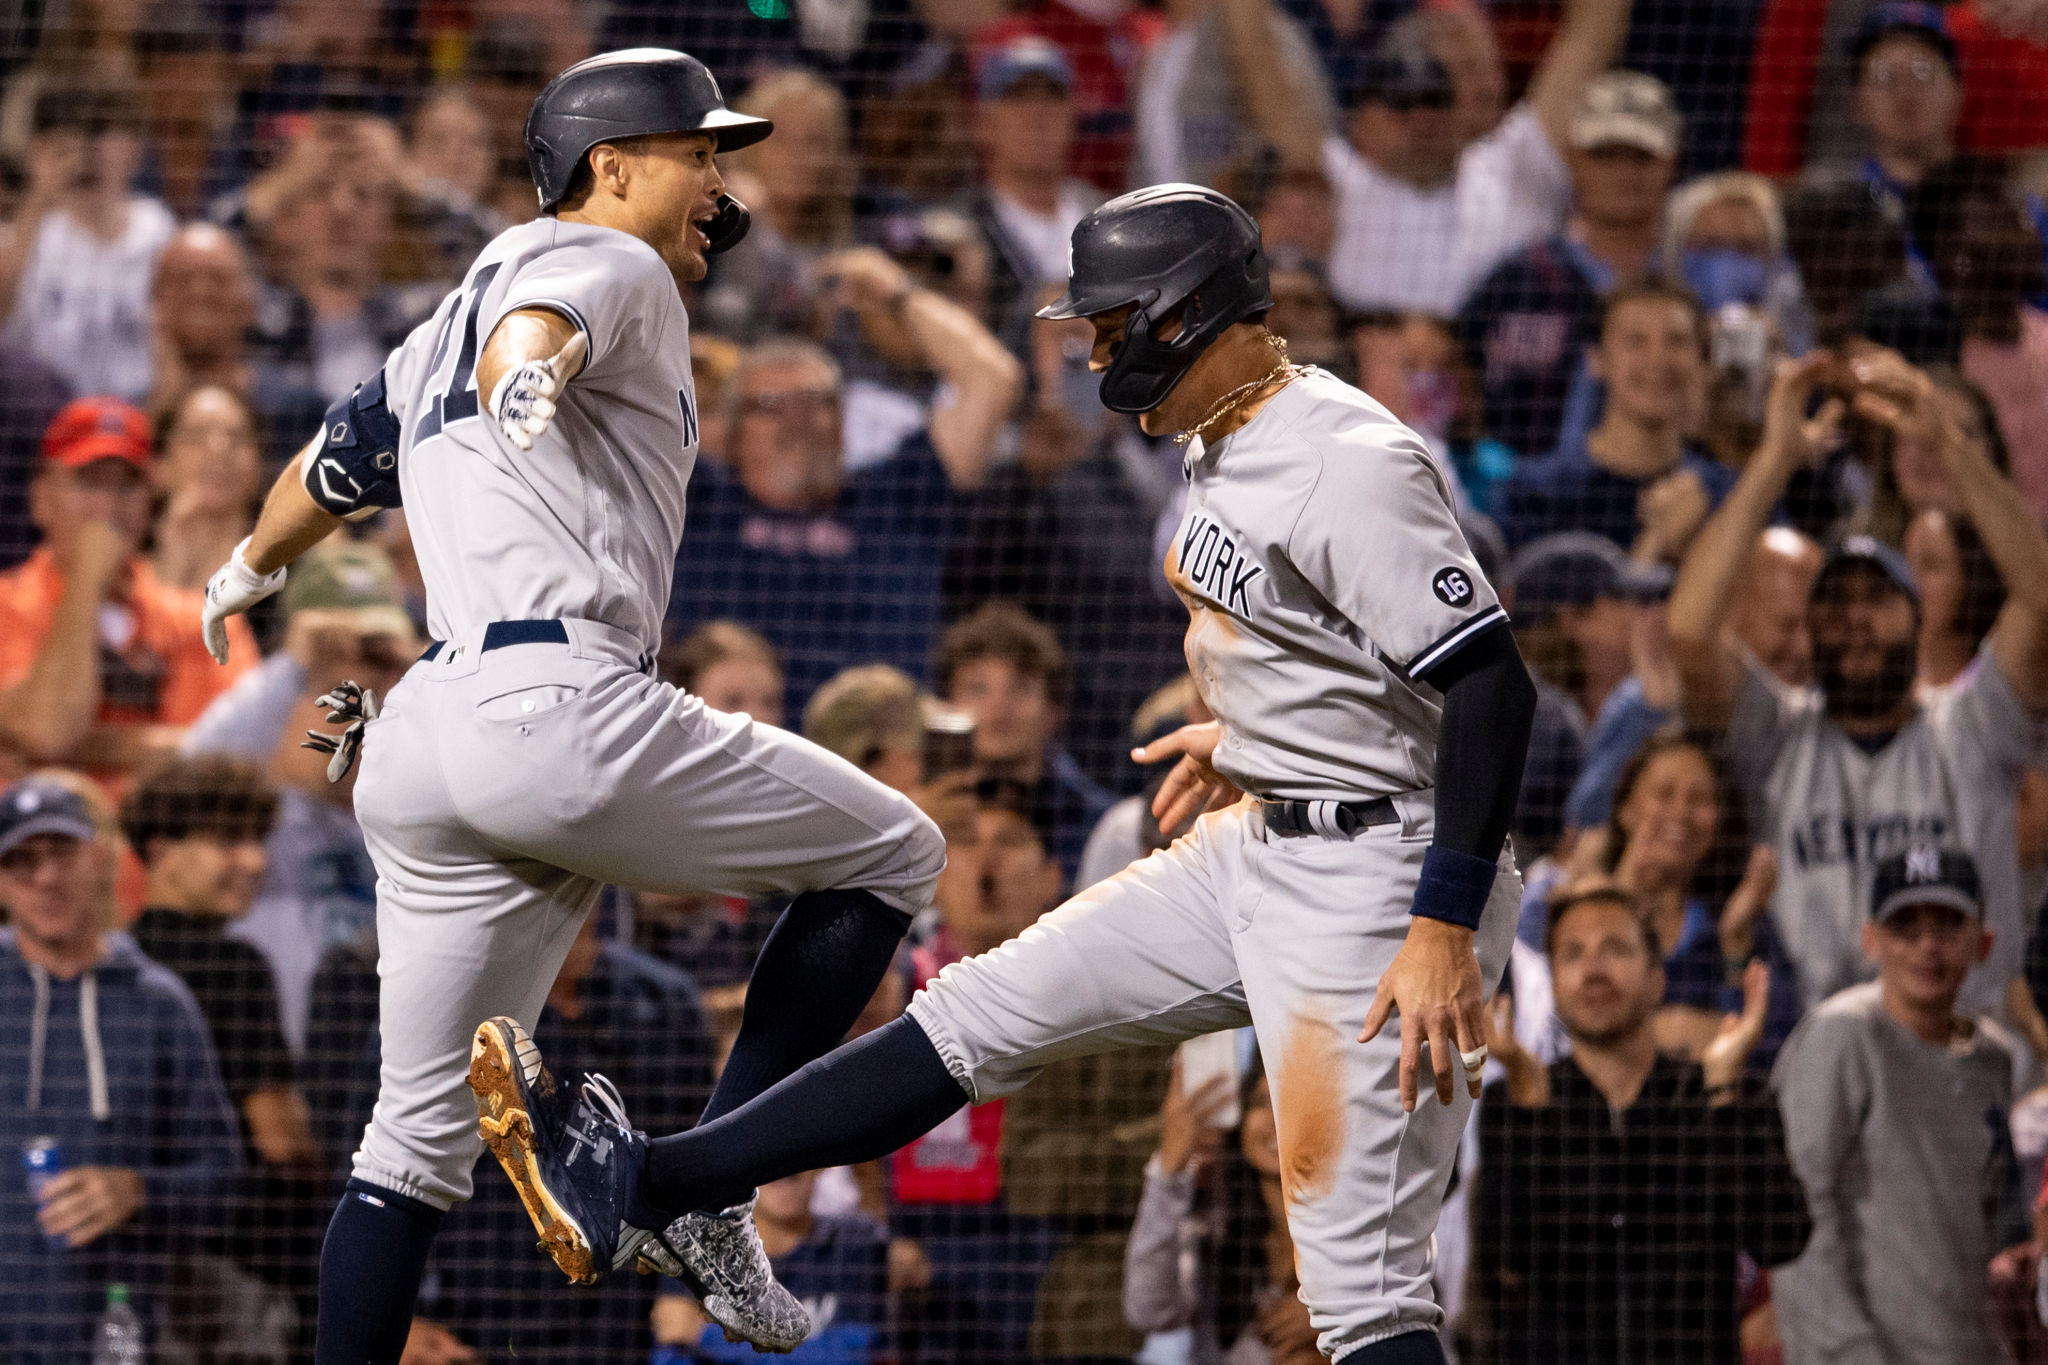 Aaron Judge and Giancarlo Stanton Come Through In The Clutch To Complete the Yankees' Massive Sweep In Fenway